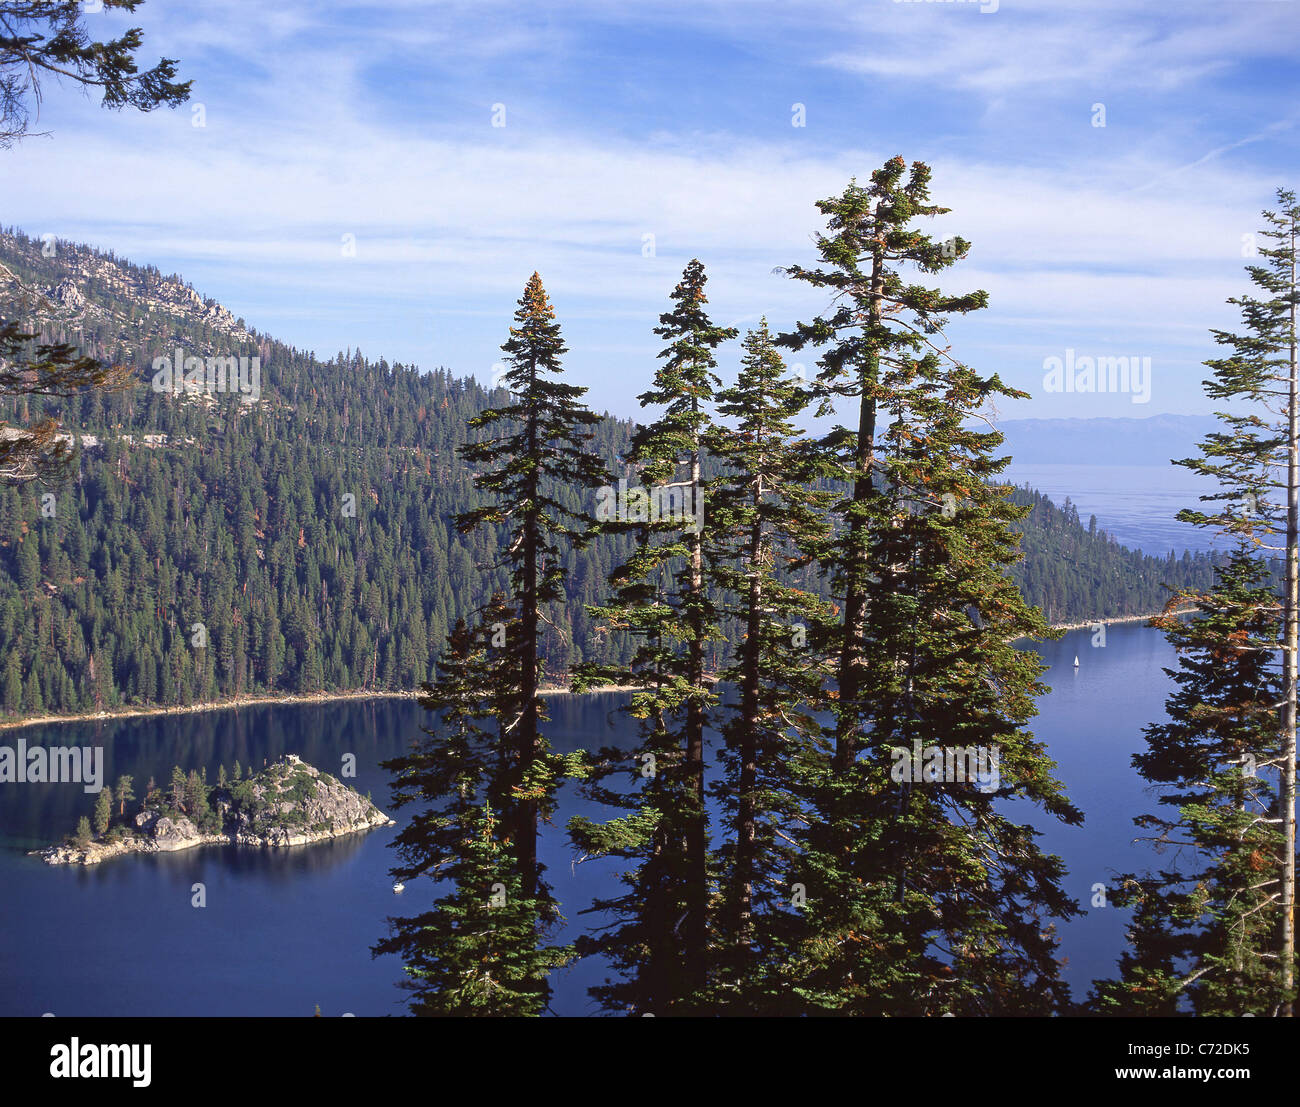 Emerald Bay showing Fannette Island, Lake Tahoe, Sierra Nevada, Nevada, United States of America Stock Photo